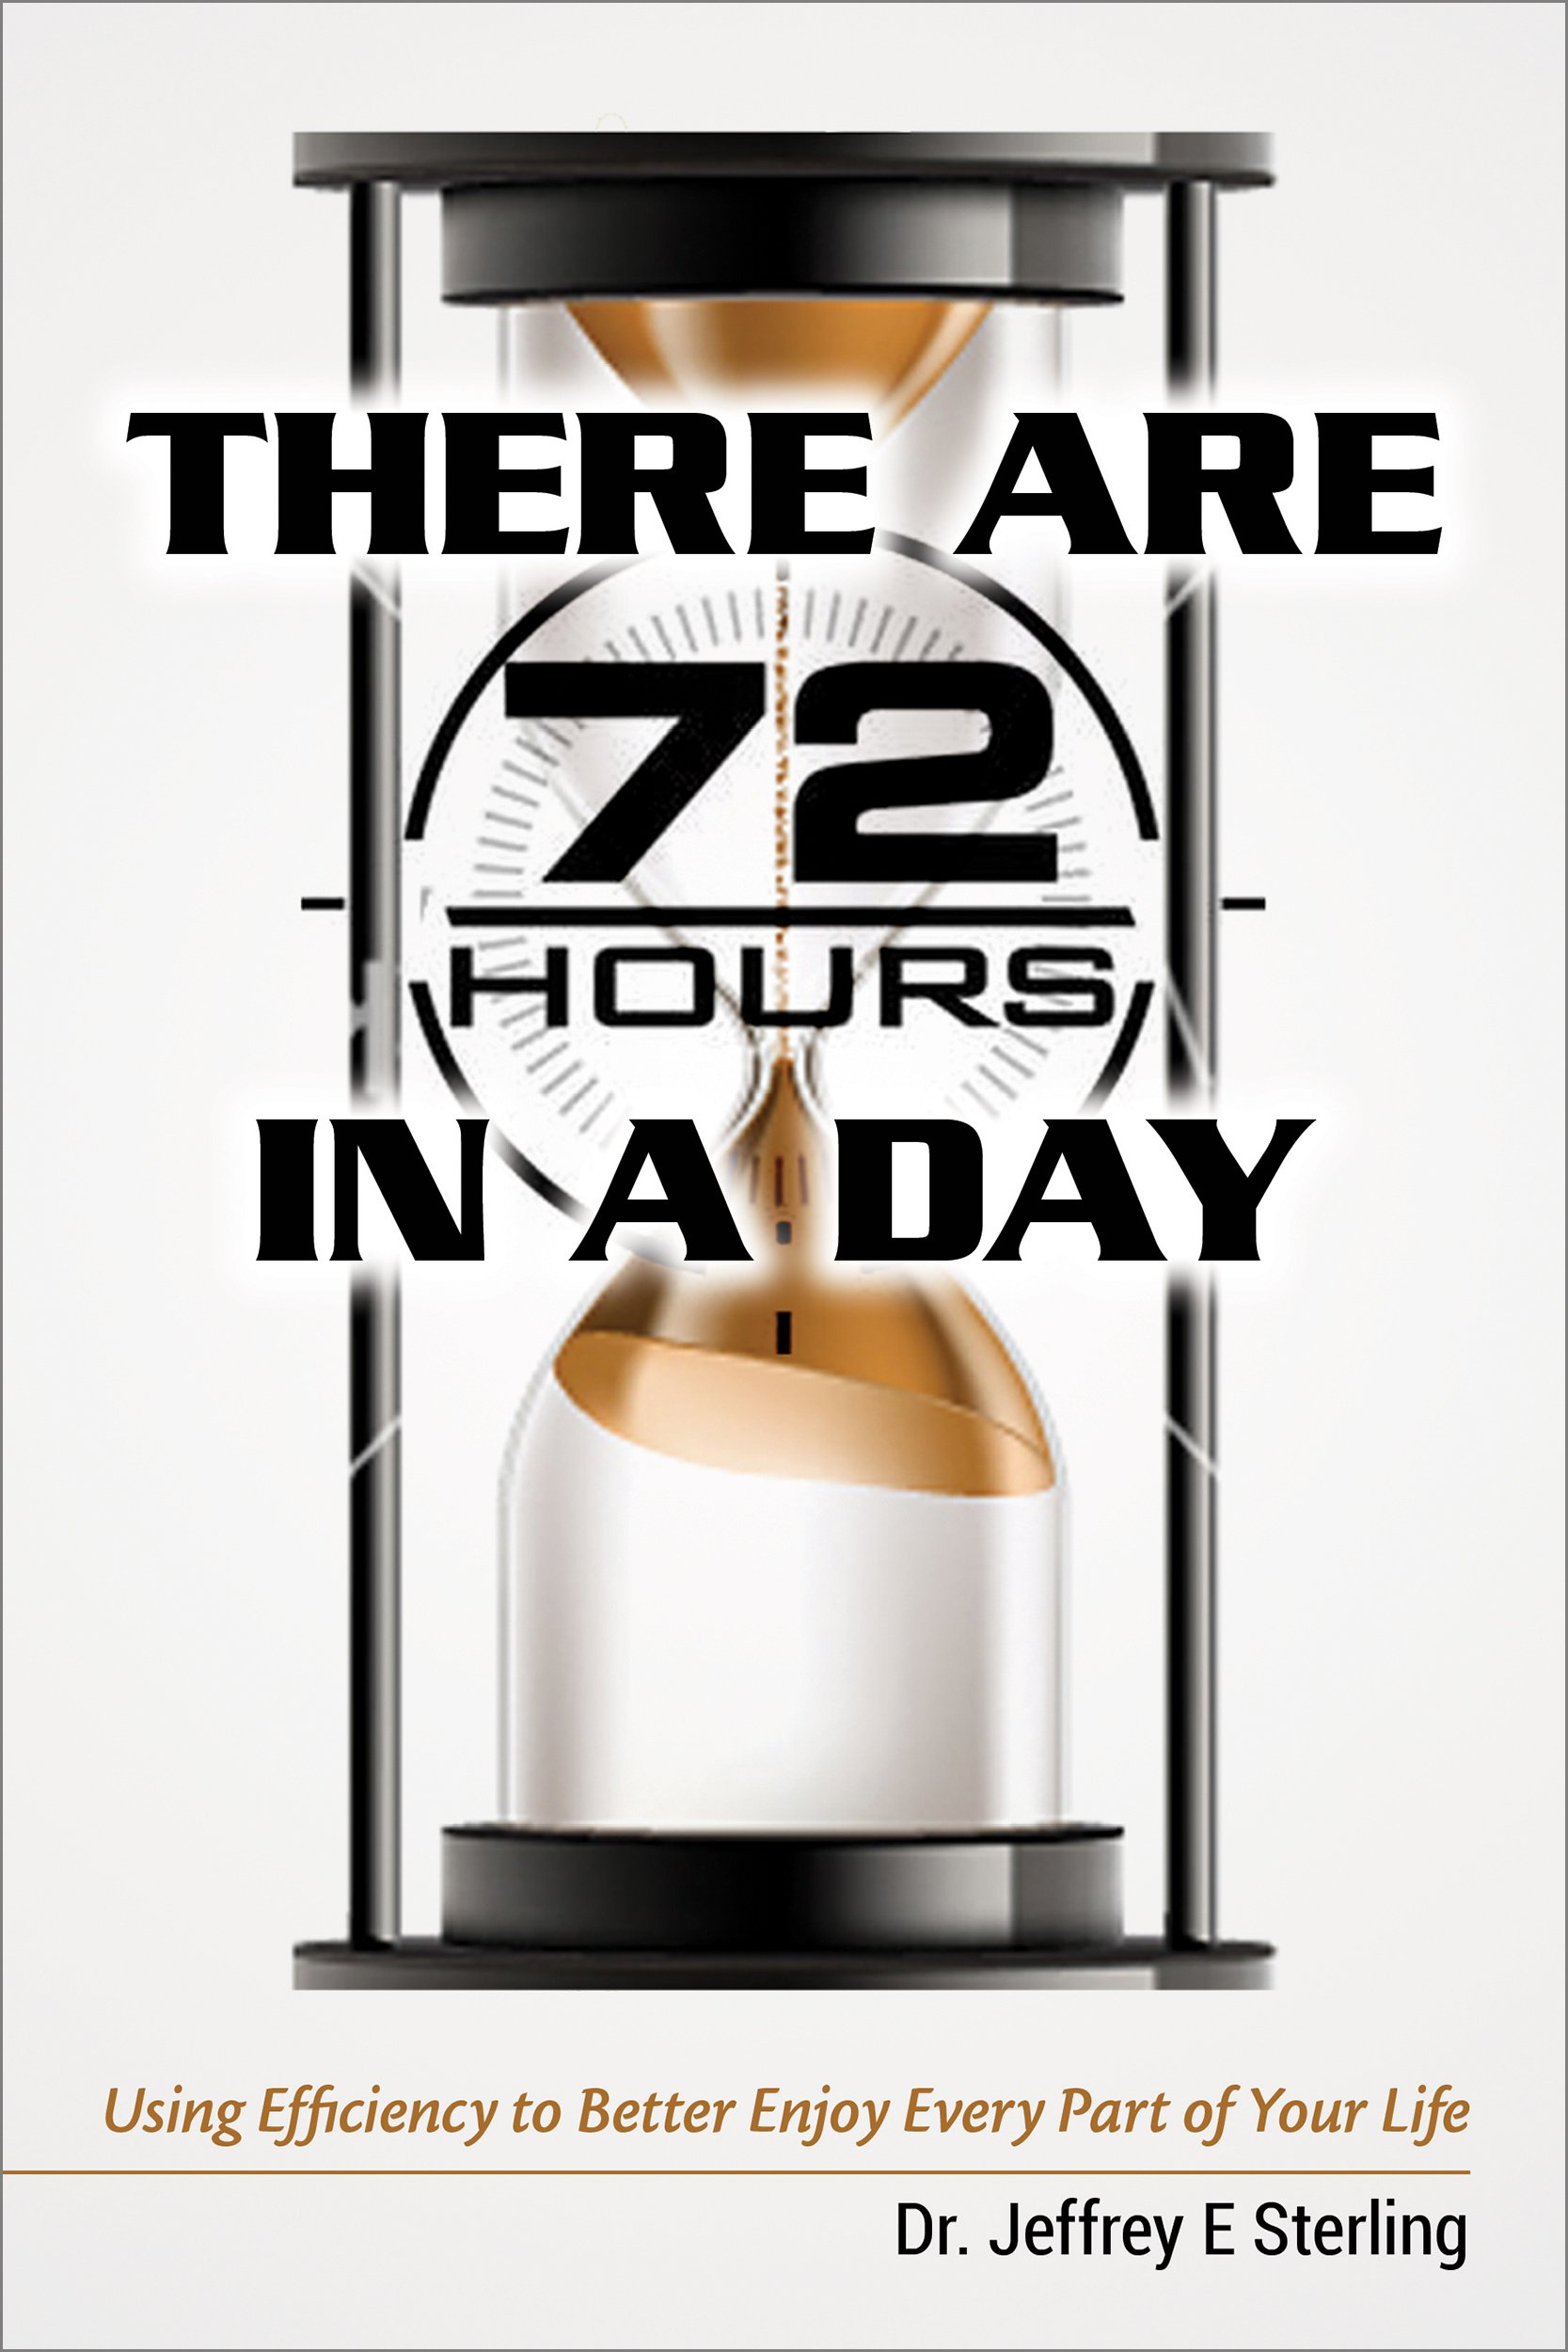 Image OfThere Are 72 Hours In A Day: Using Efficiency To Better Enjoy Every Part Of Your Life